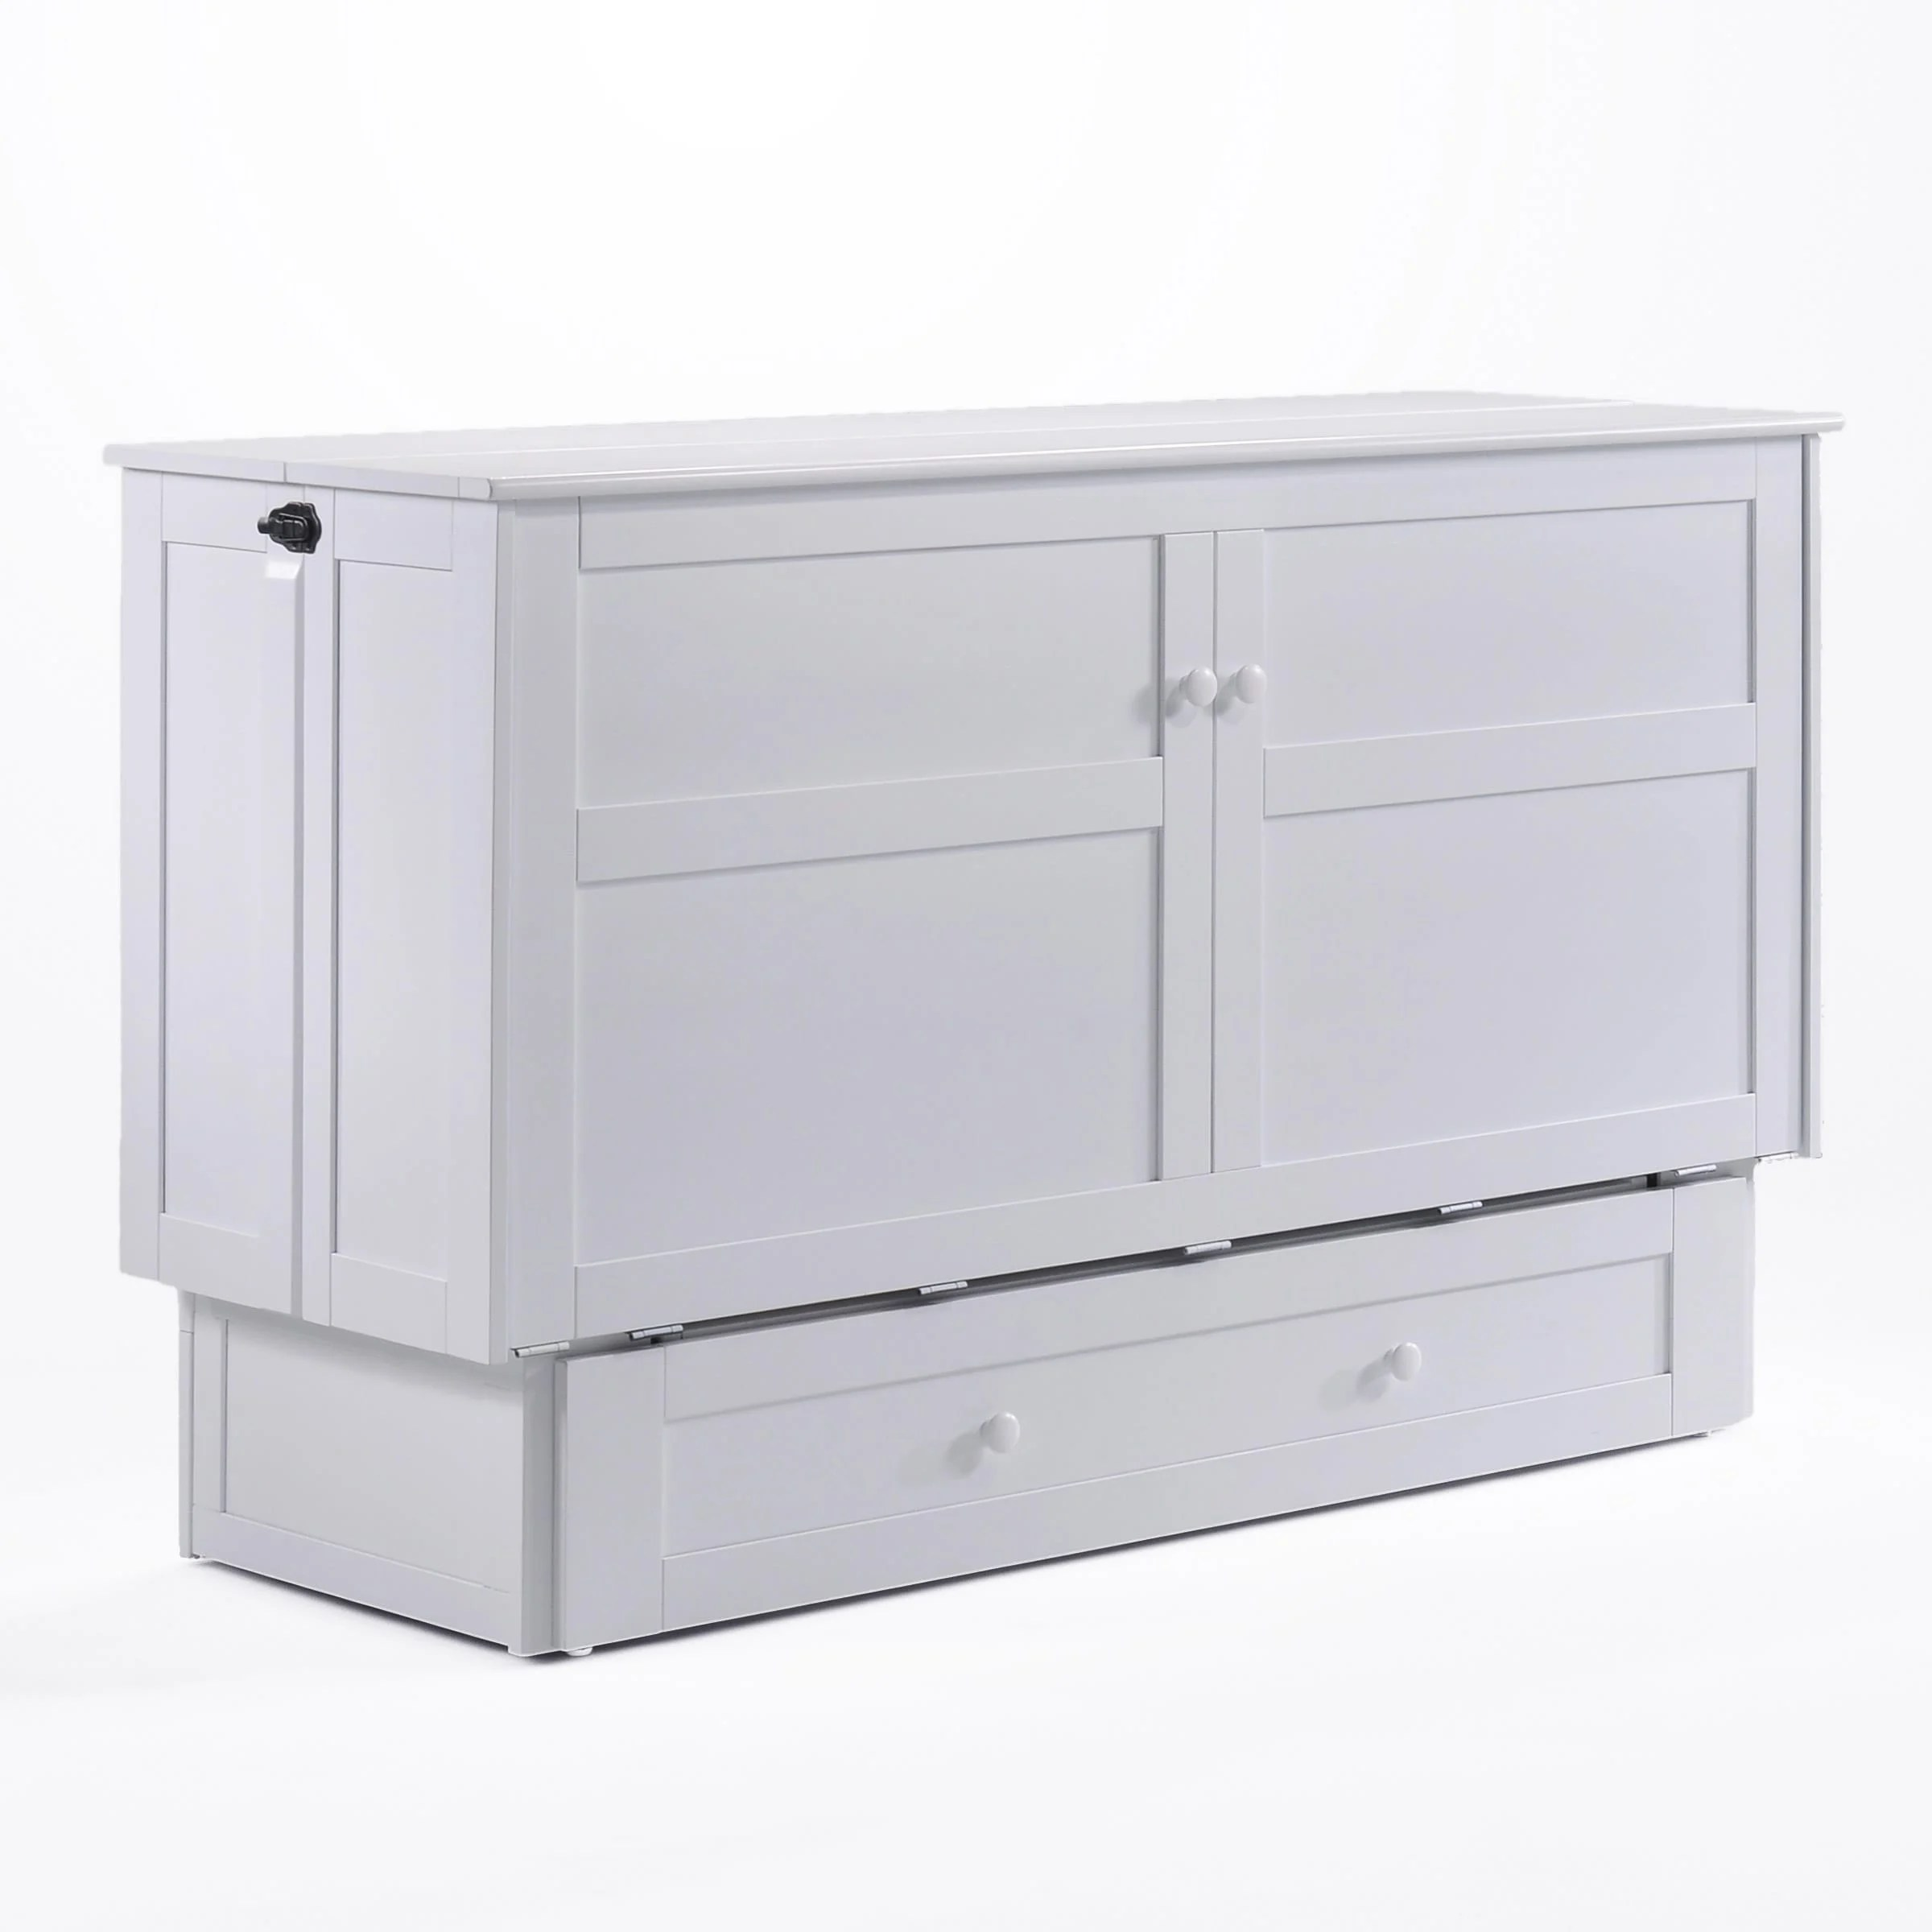 clover queen murphy cabinet bed white by night day furniture